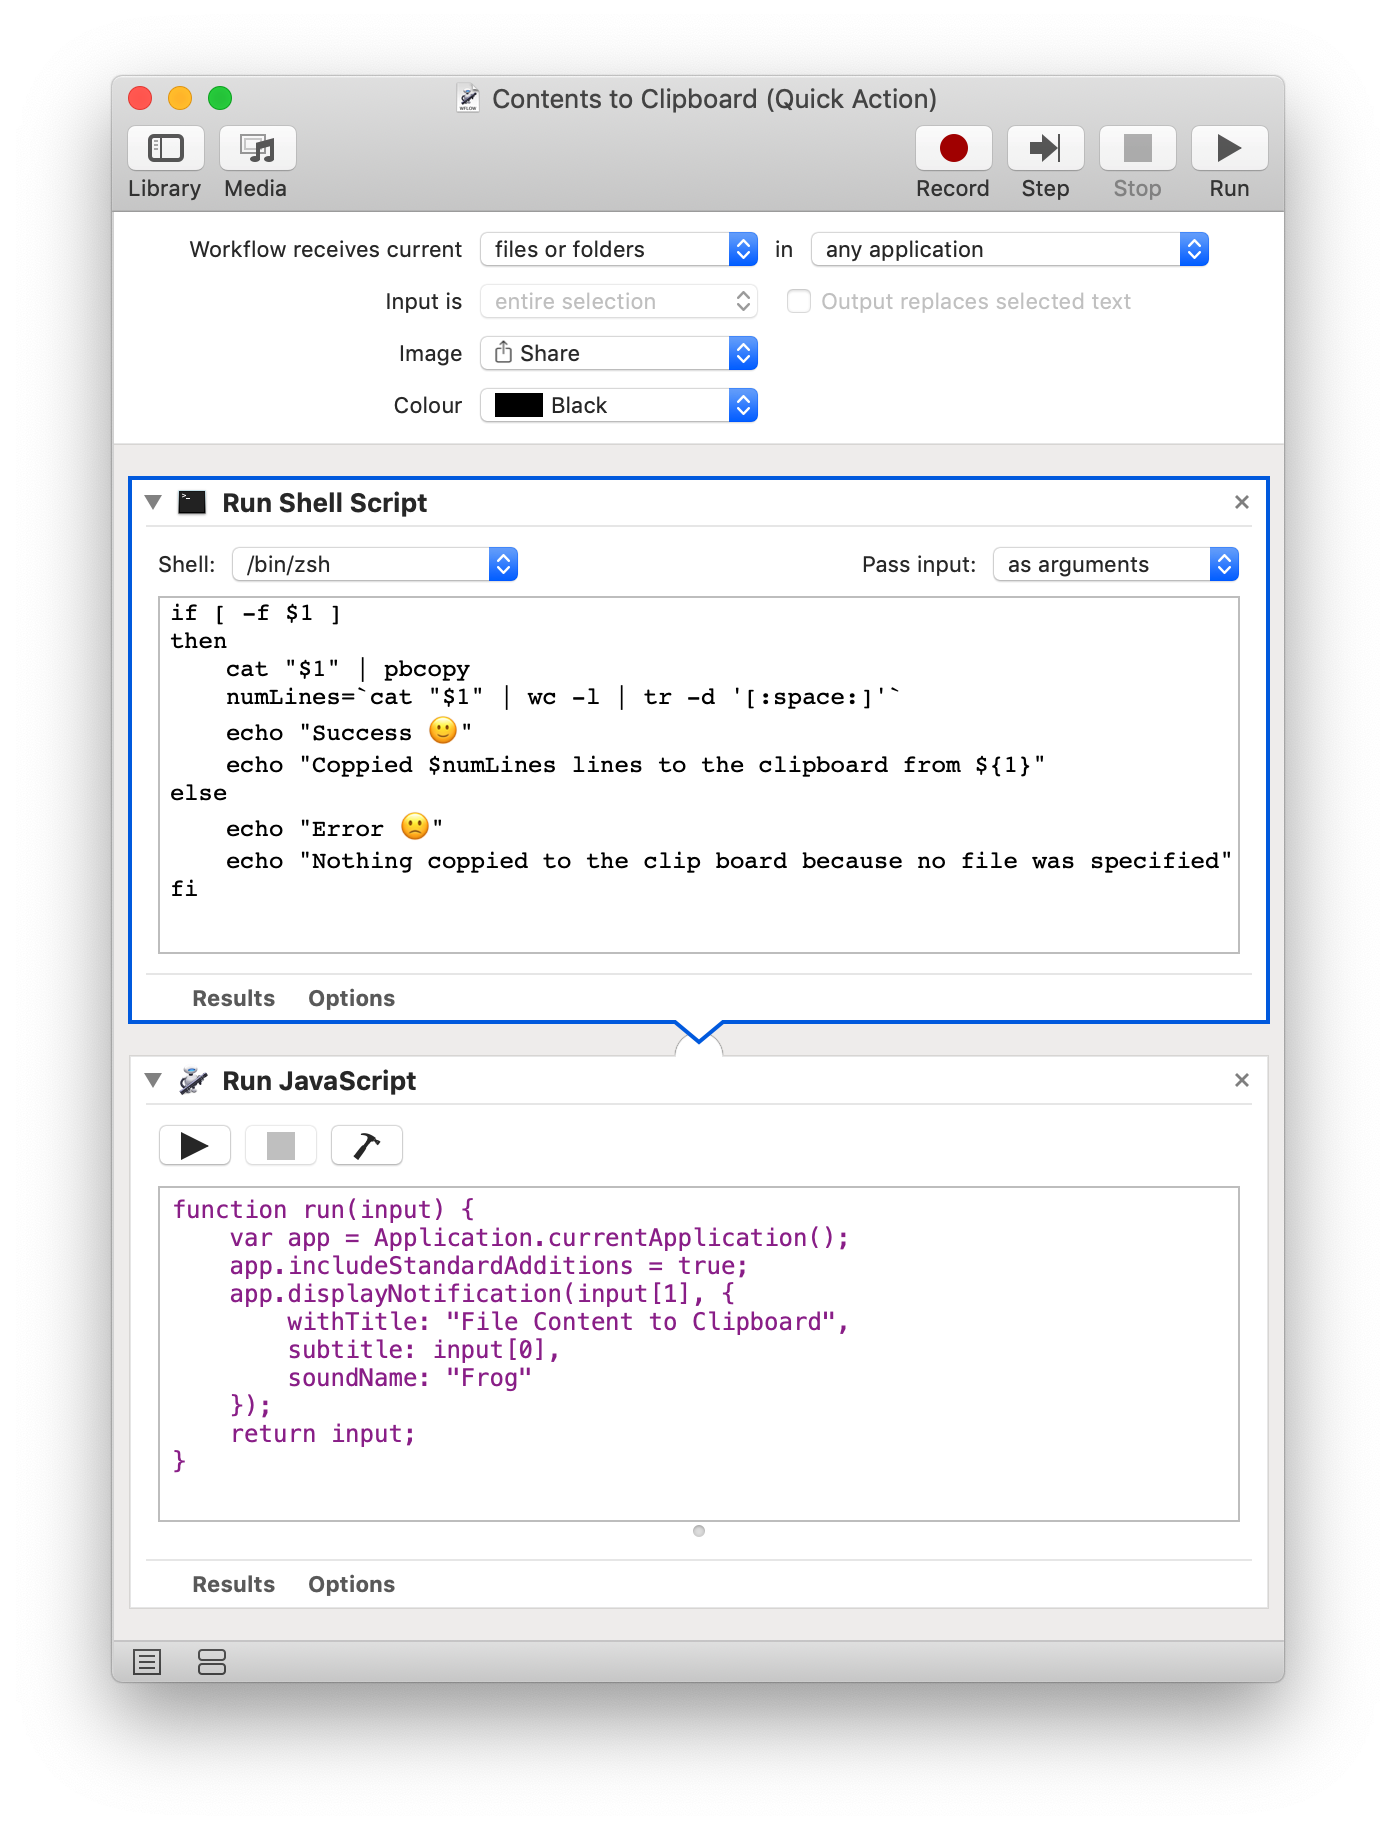 Right-click to Copy File Contents to Clipboard on macOS with